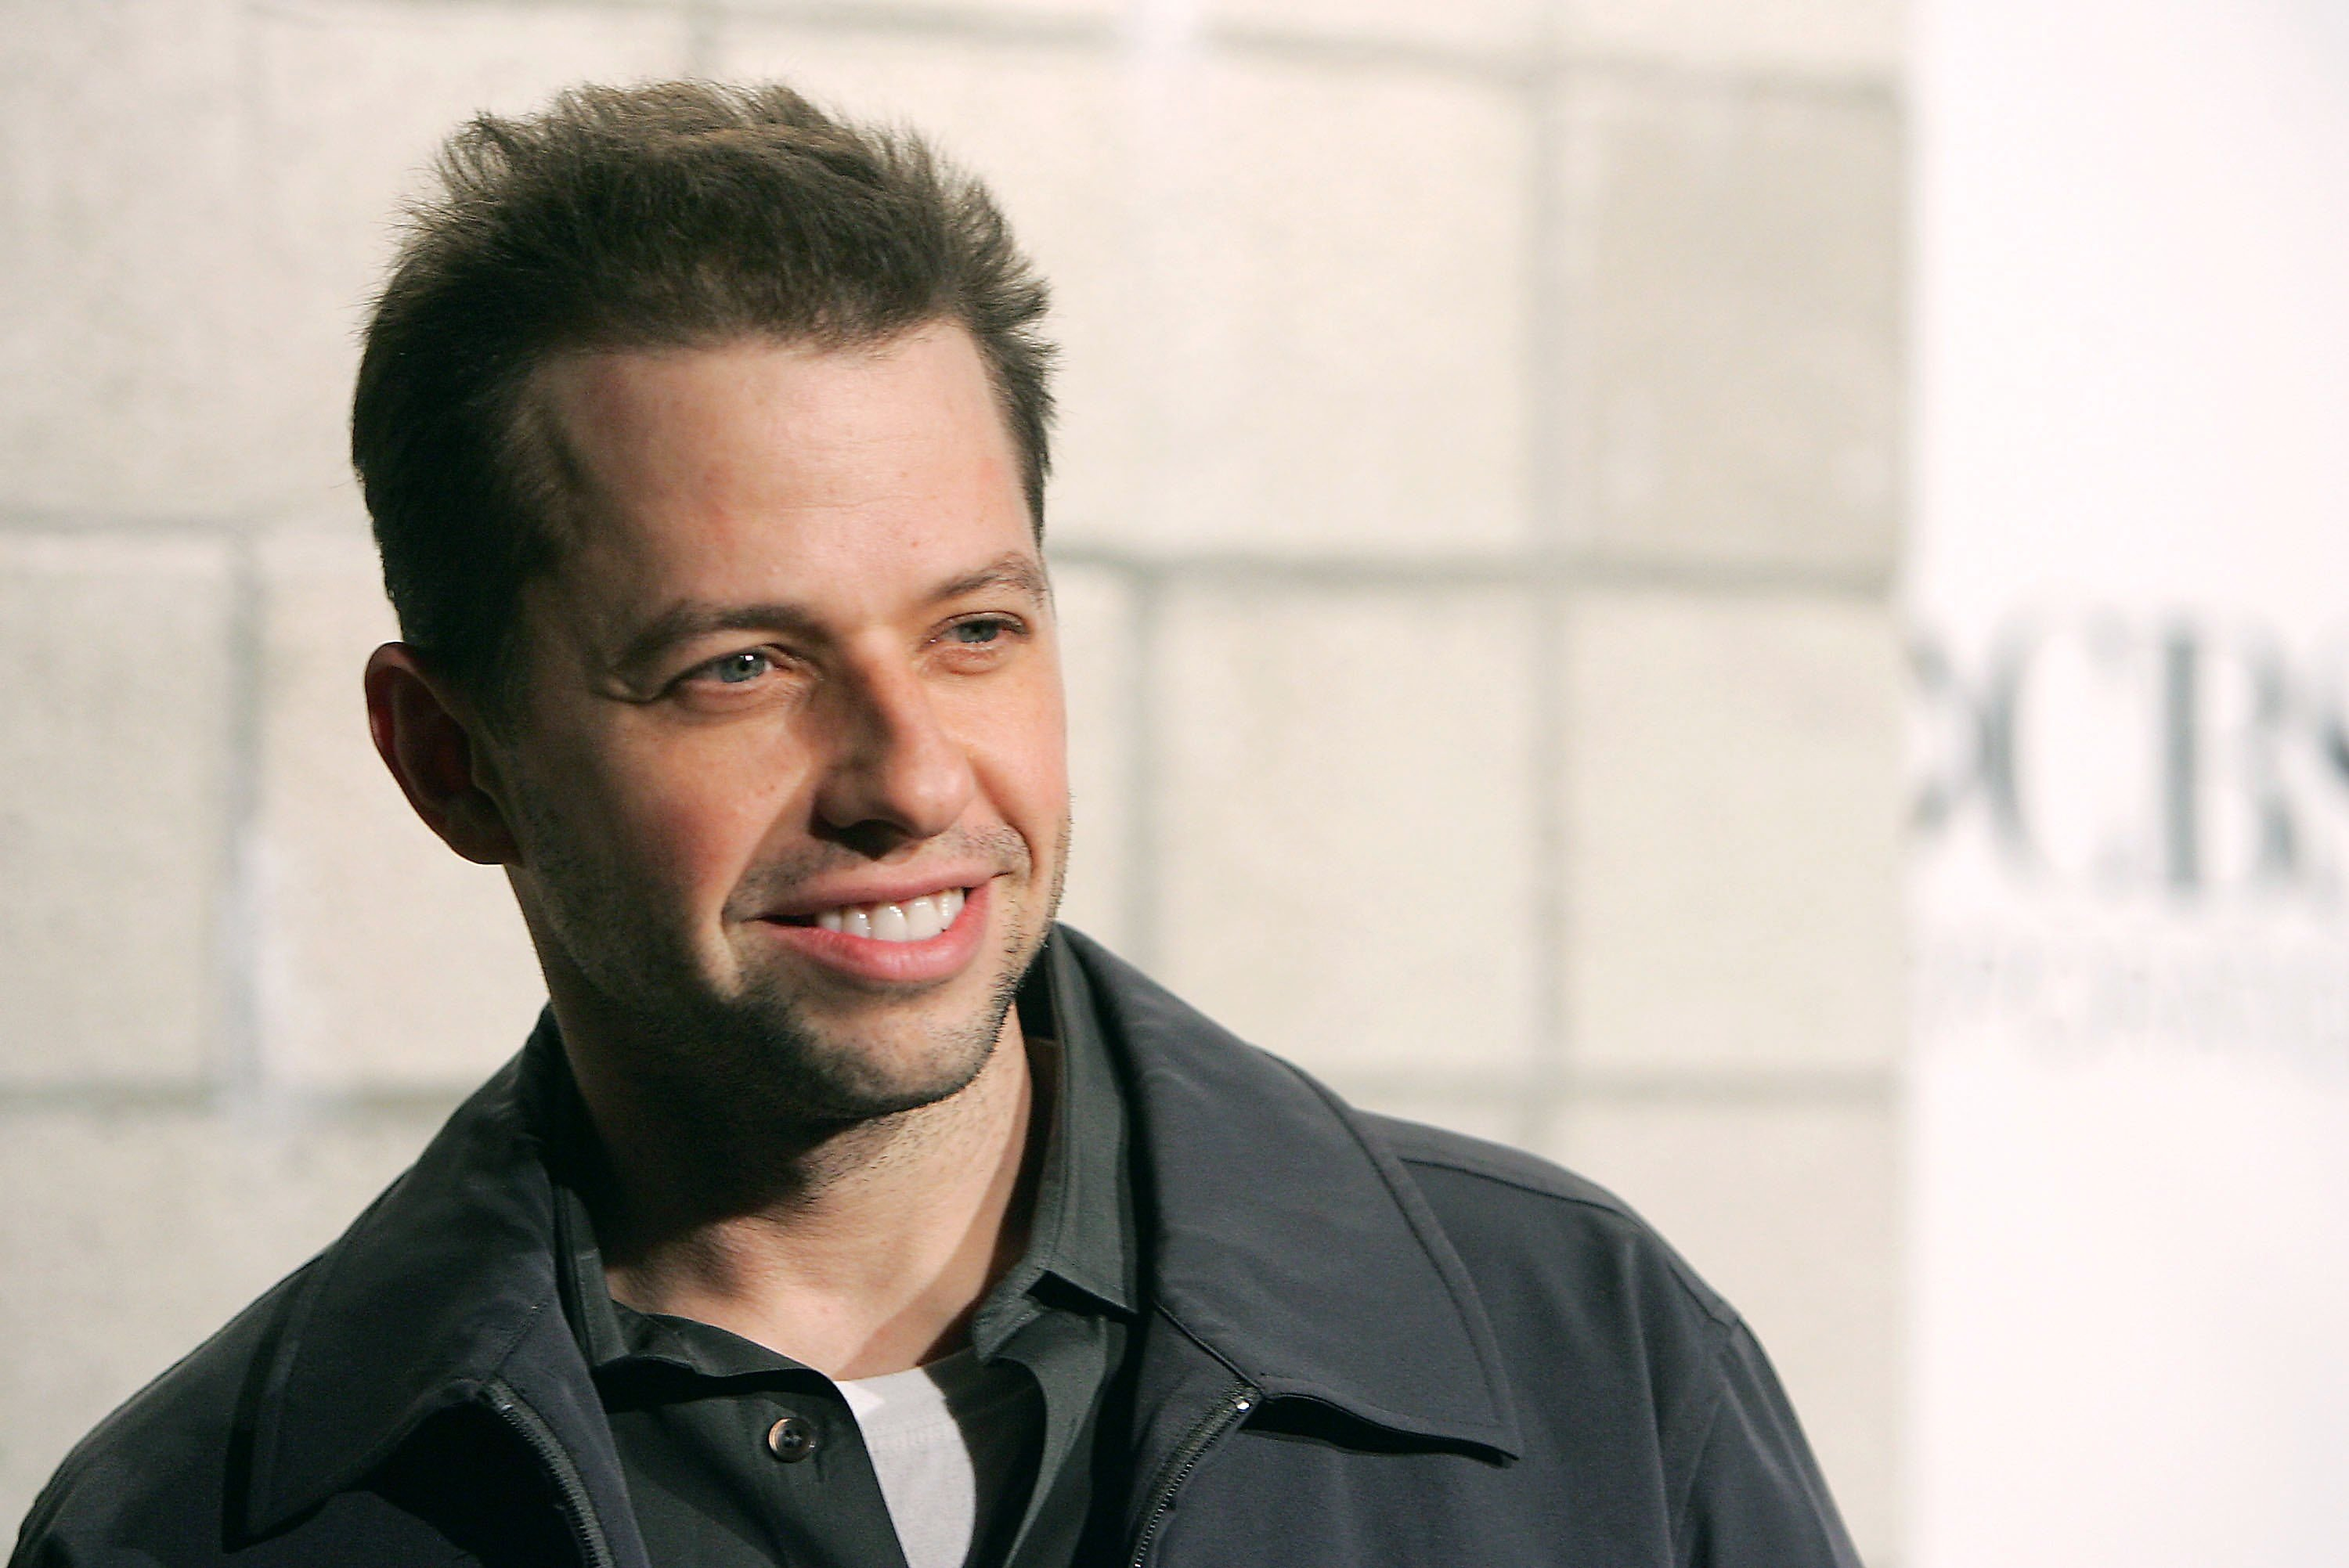 Jon Cryer arrives at the CBS, Paramount, UPN, Showtime, King World TCA Party. | Source: Getty Images